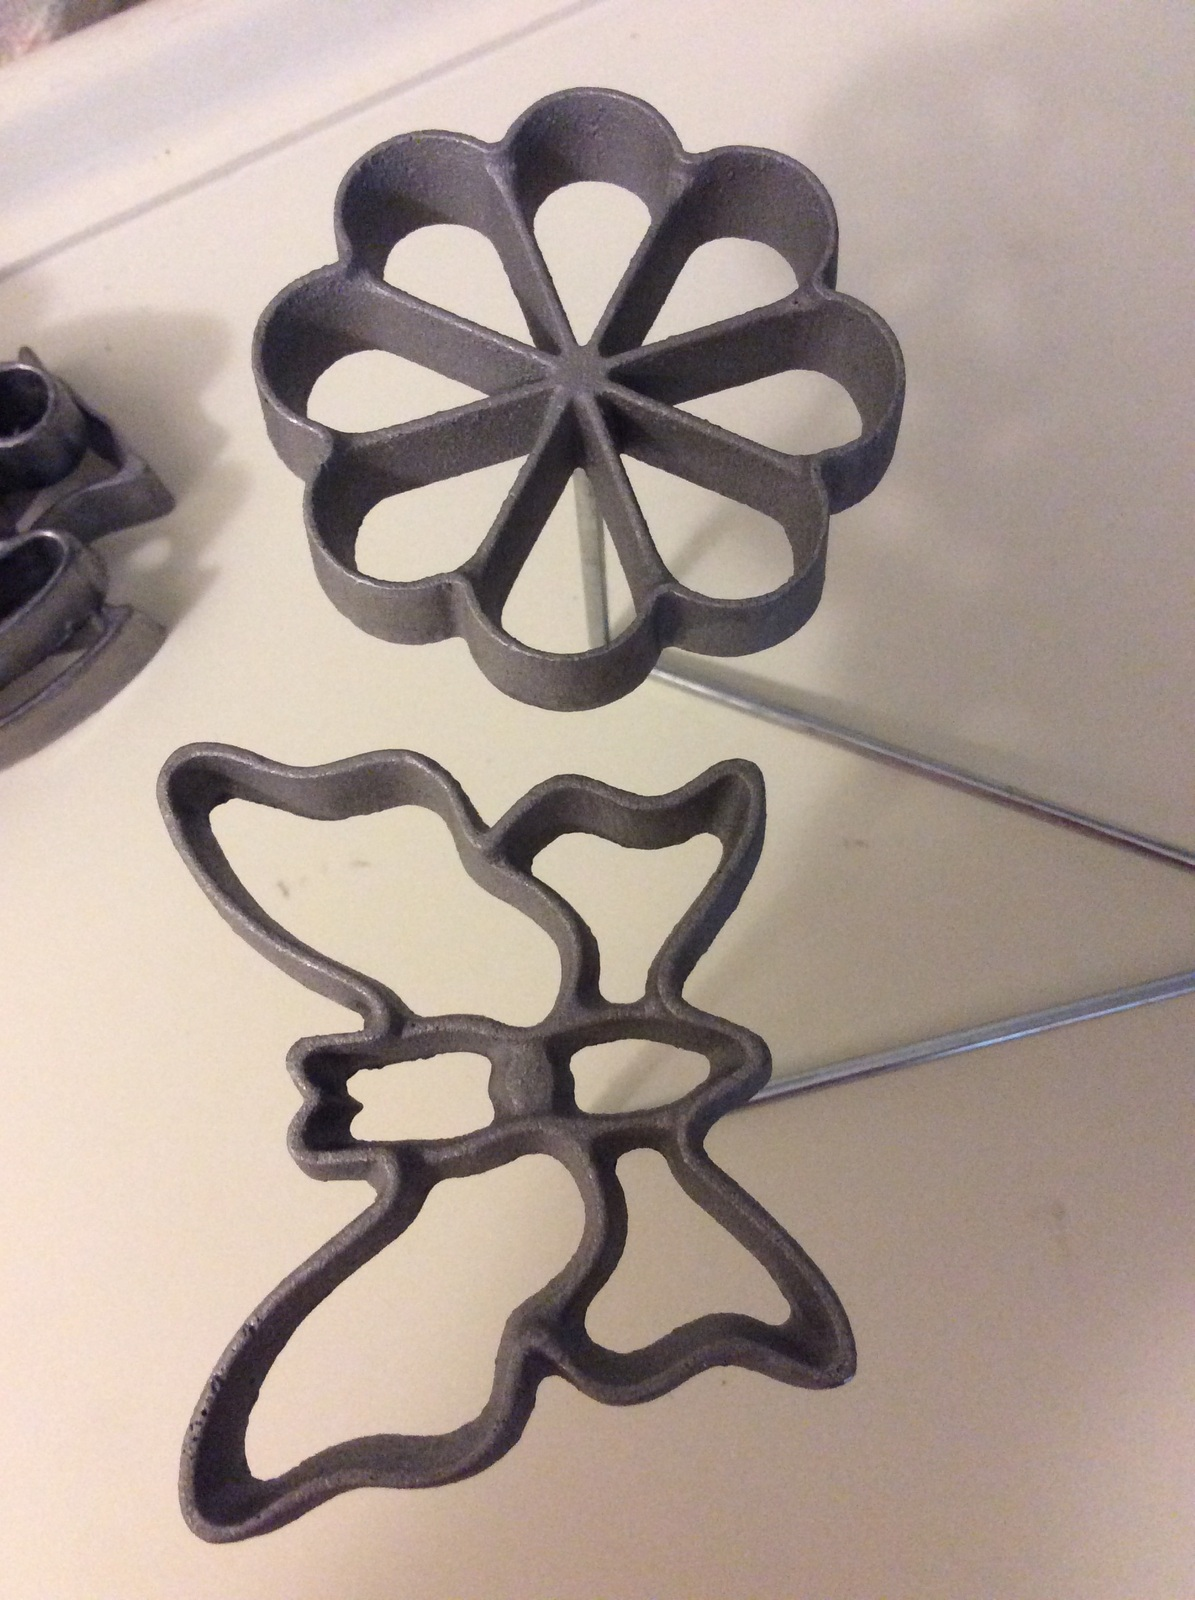 Mold Cast Set Doulbe Rosette open form Aluminum with 6 molds